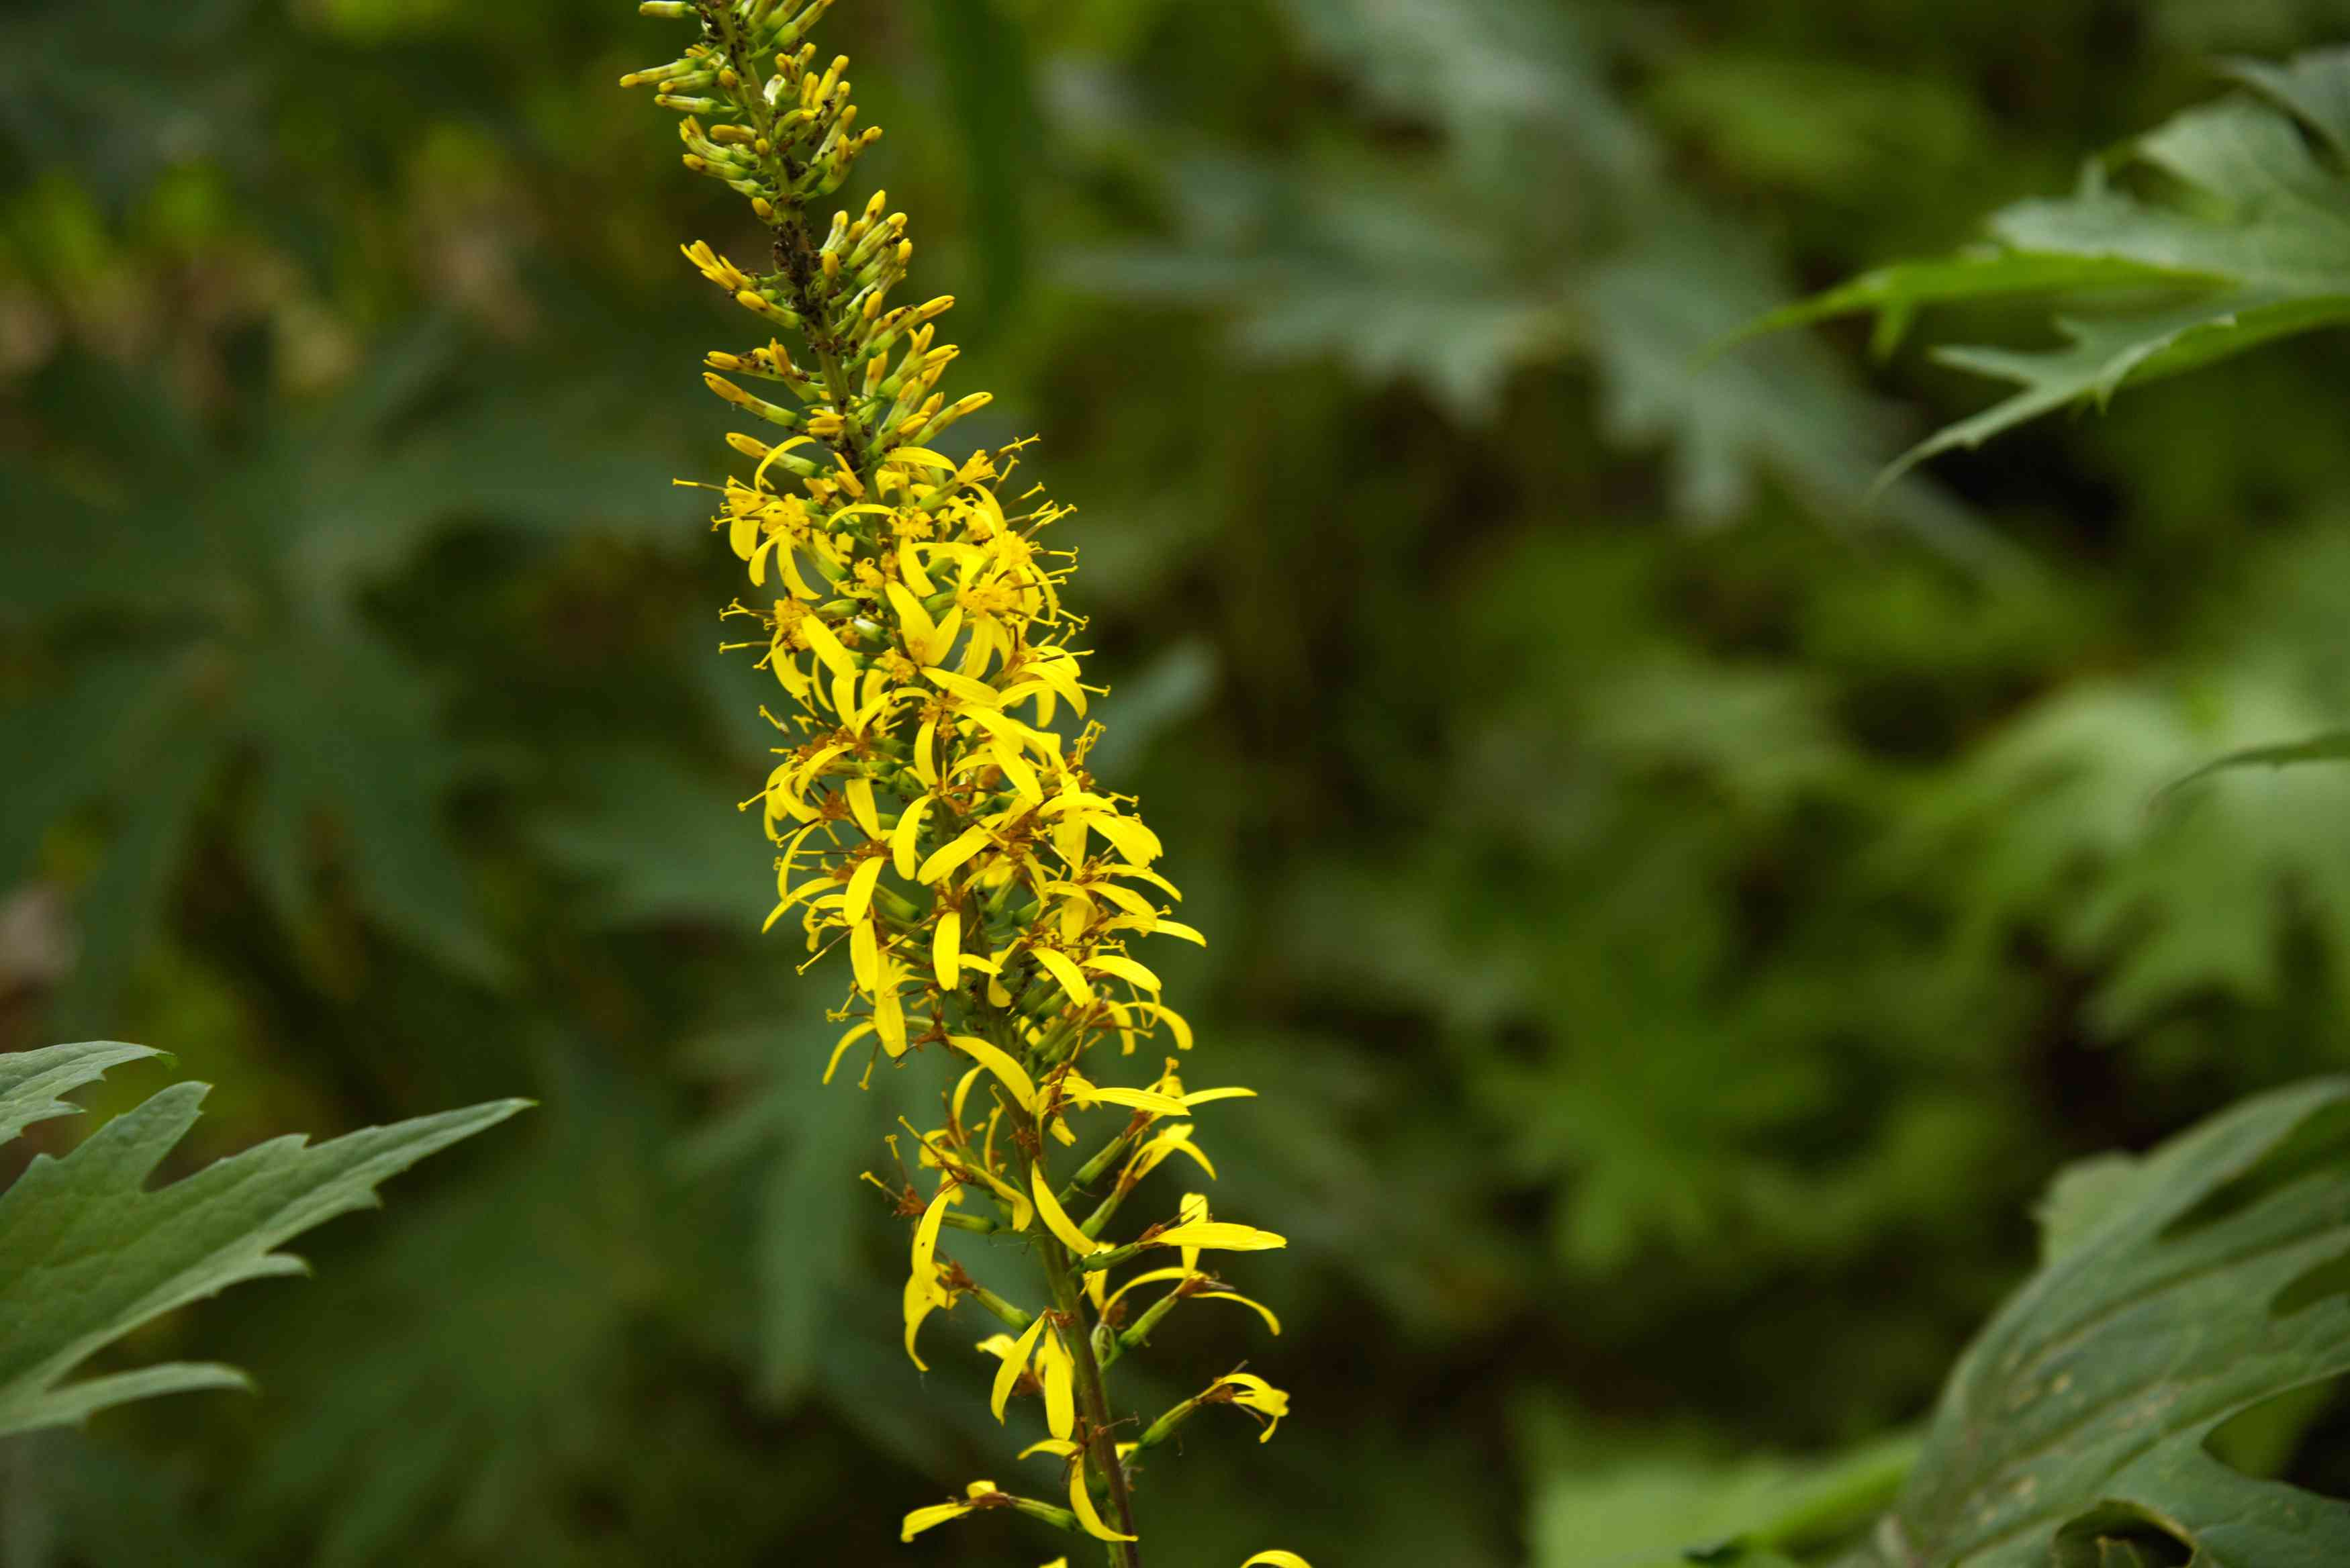 Leopard 'The Rocket' plant with small golden petal clusters on tall flower spike